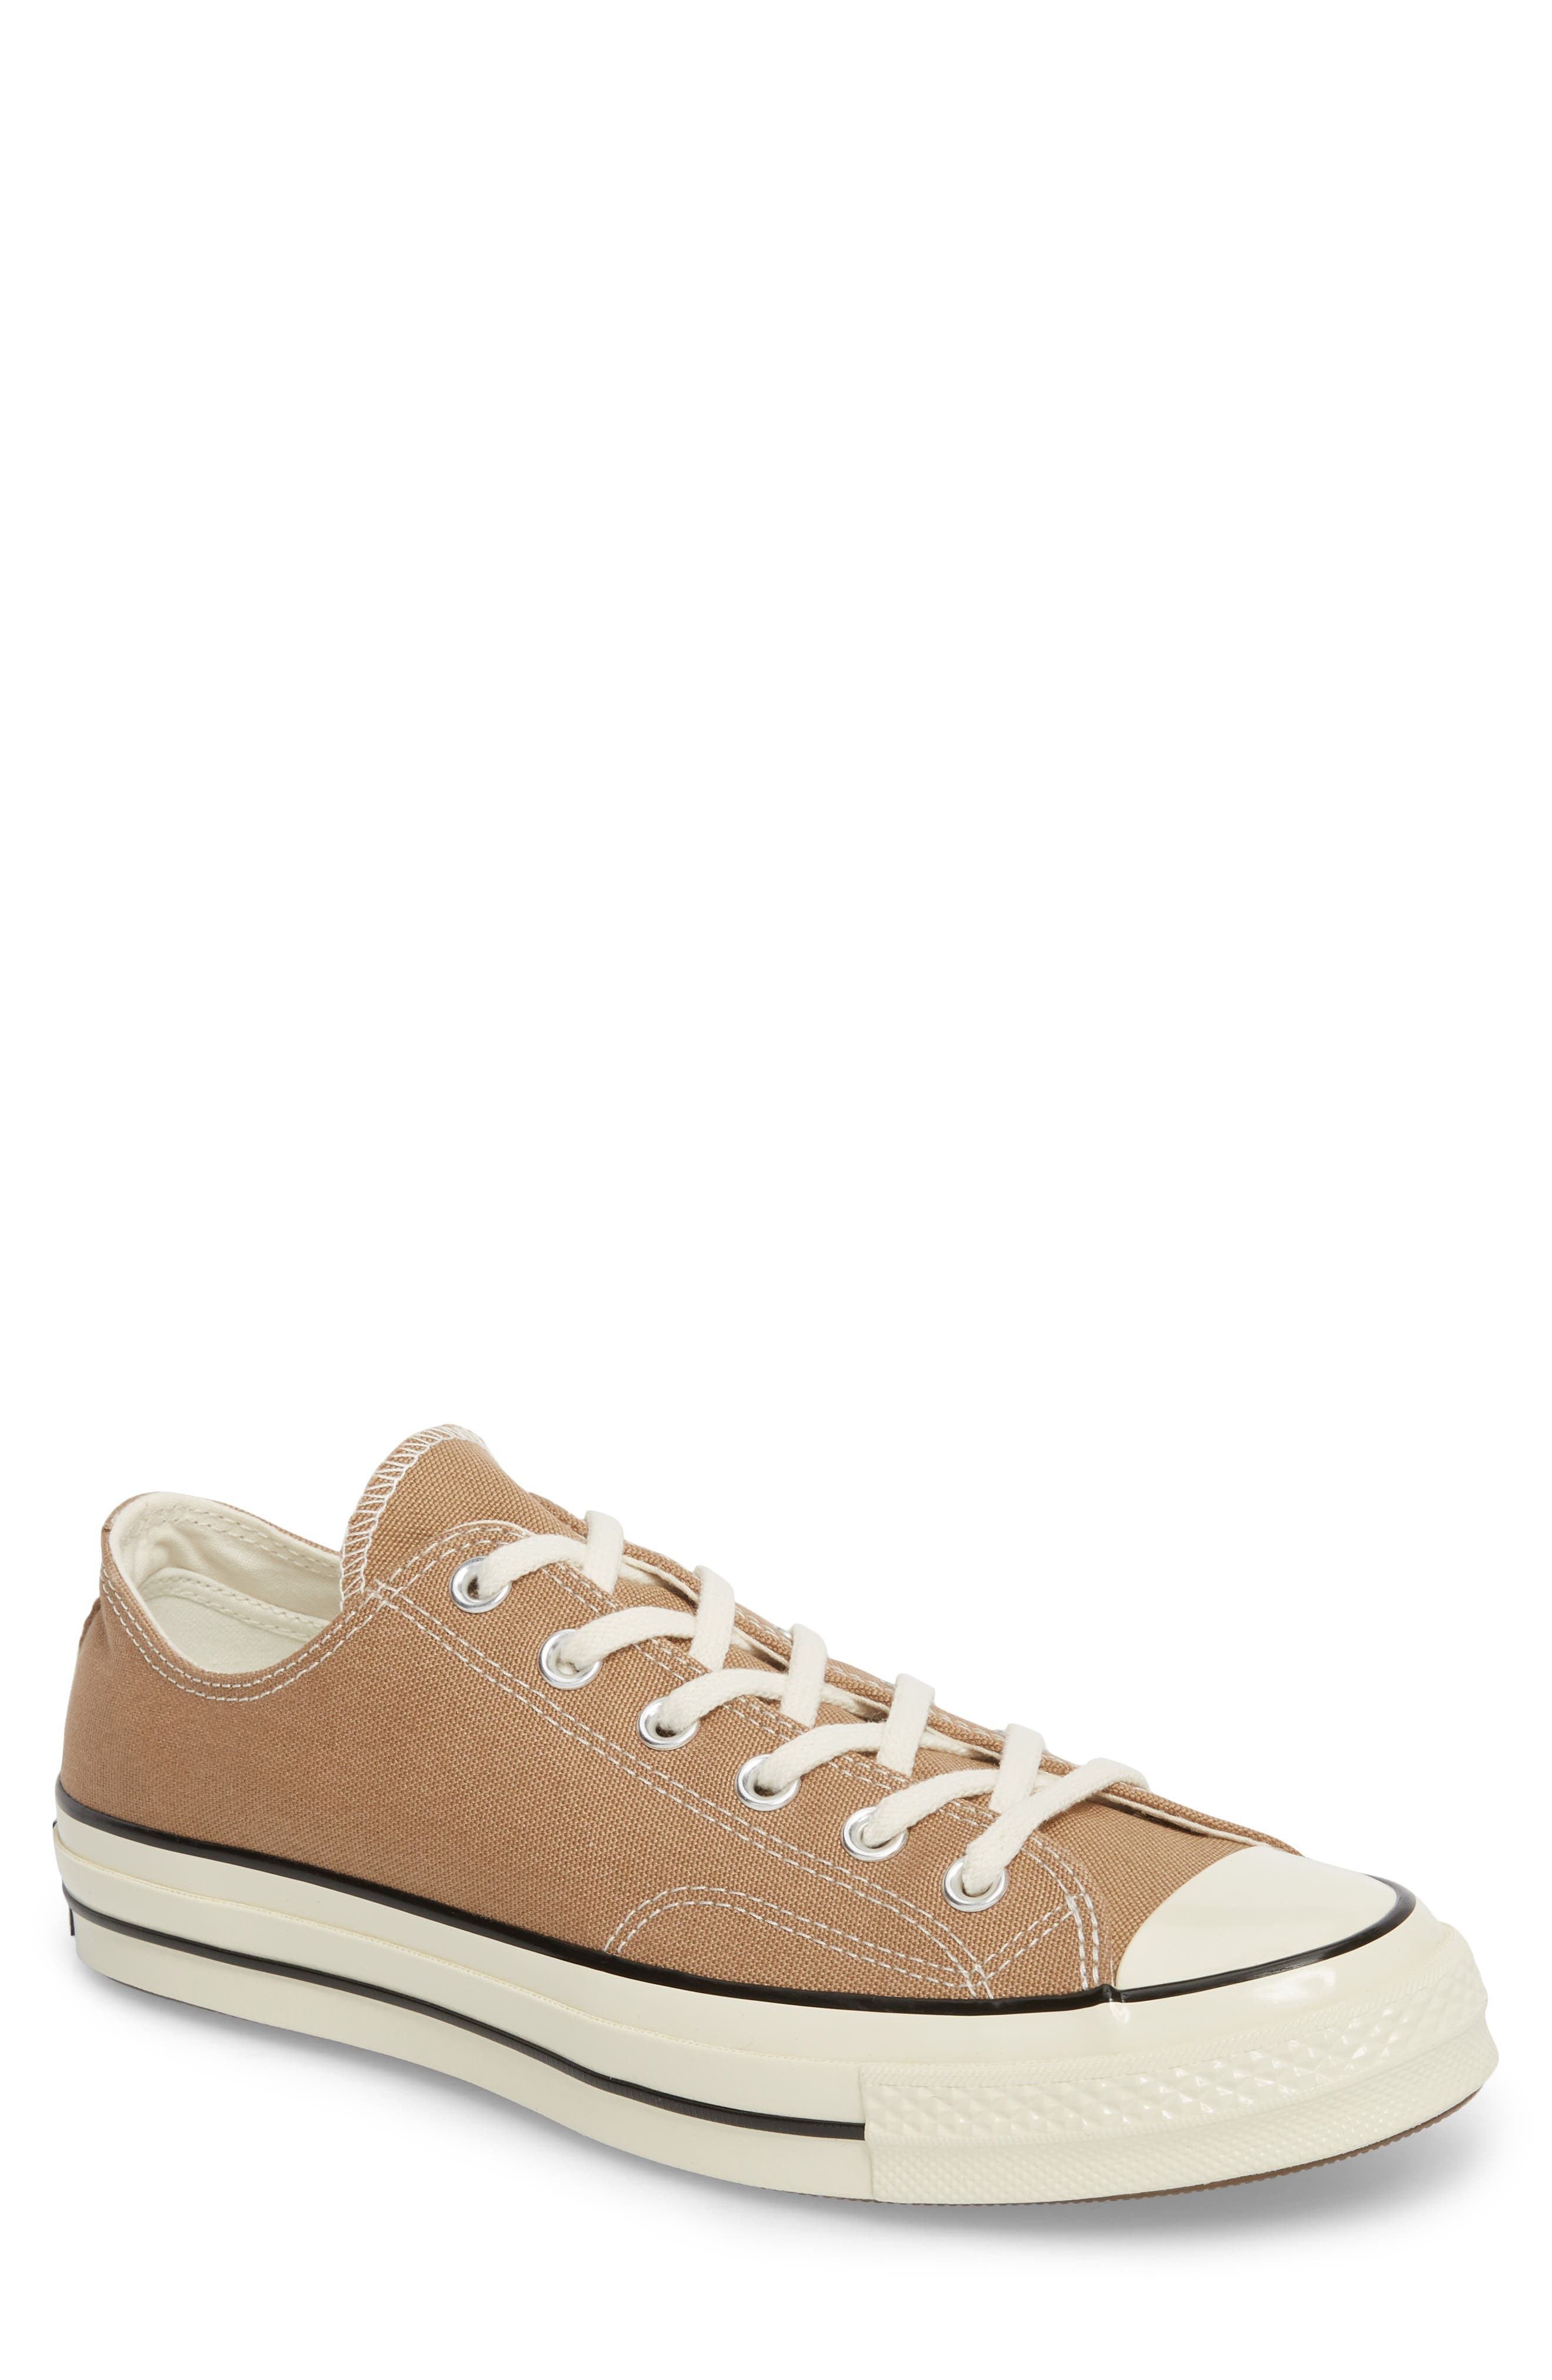 Chuck Taylor<sup>®</sup> All Star<sup>®</sup> 70 Heritage Sneaker,                         Main,                         color, Teak Canvas